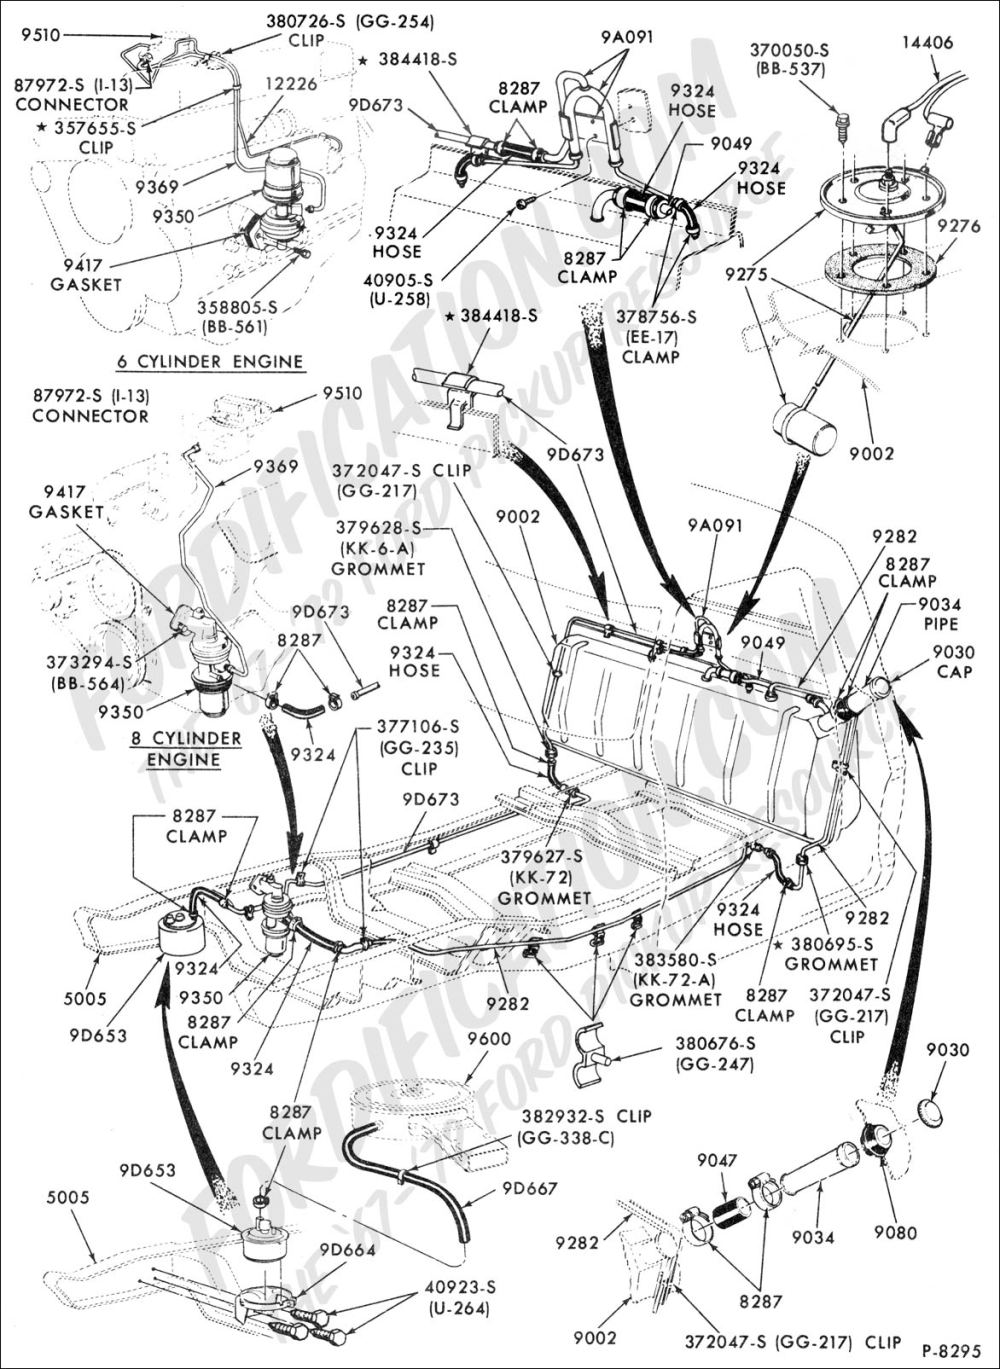 medium resolution of 1983 chevy truck vacuum line diagram chevrolet wiring diagrams 350 chevy vacuum routing chevrolet 6 cyl